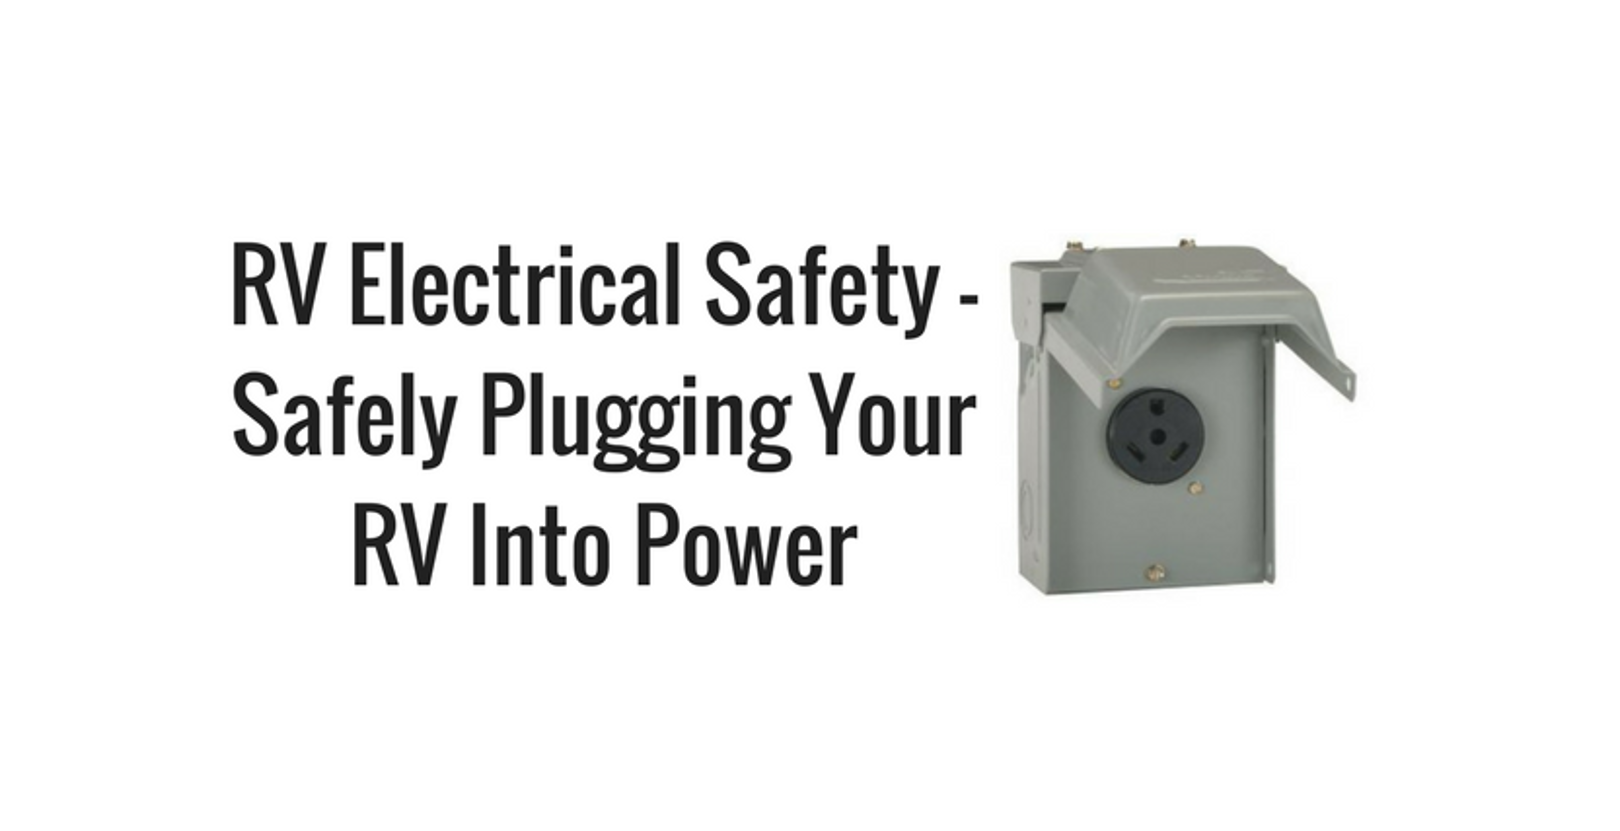 RV Electrical Safety – Safely Plugging Your RV into Power